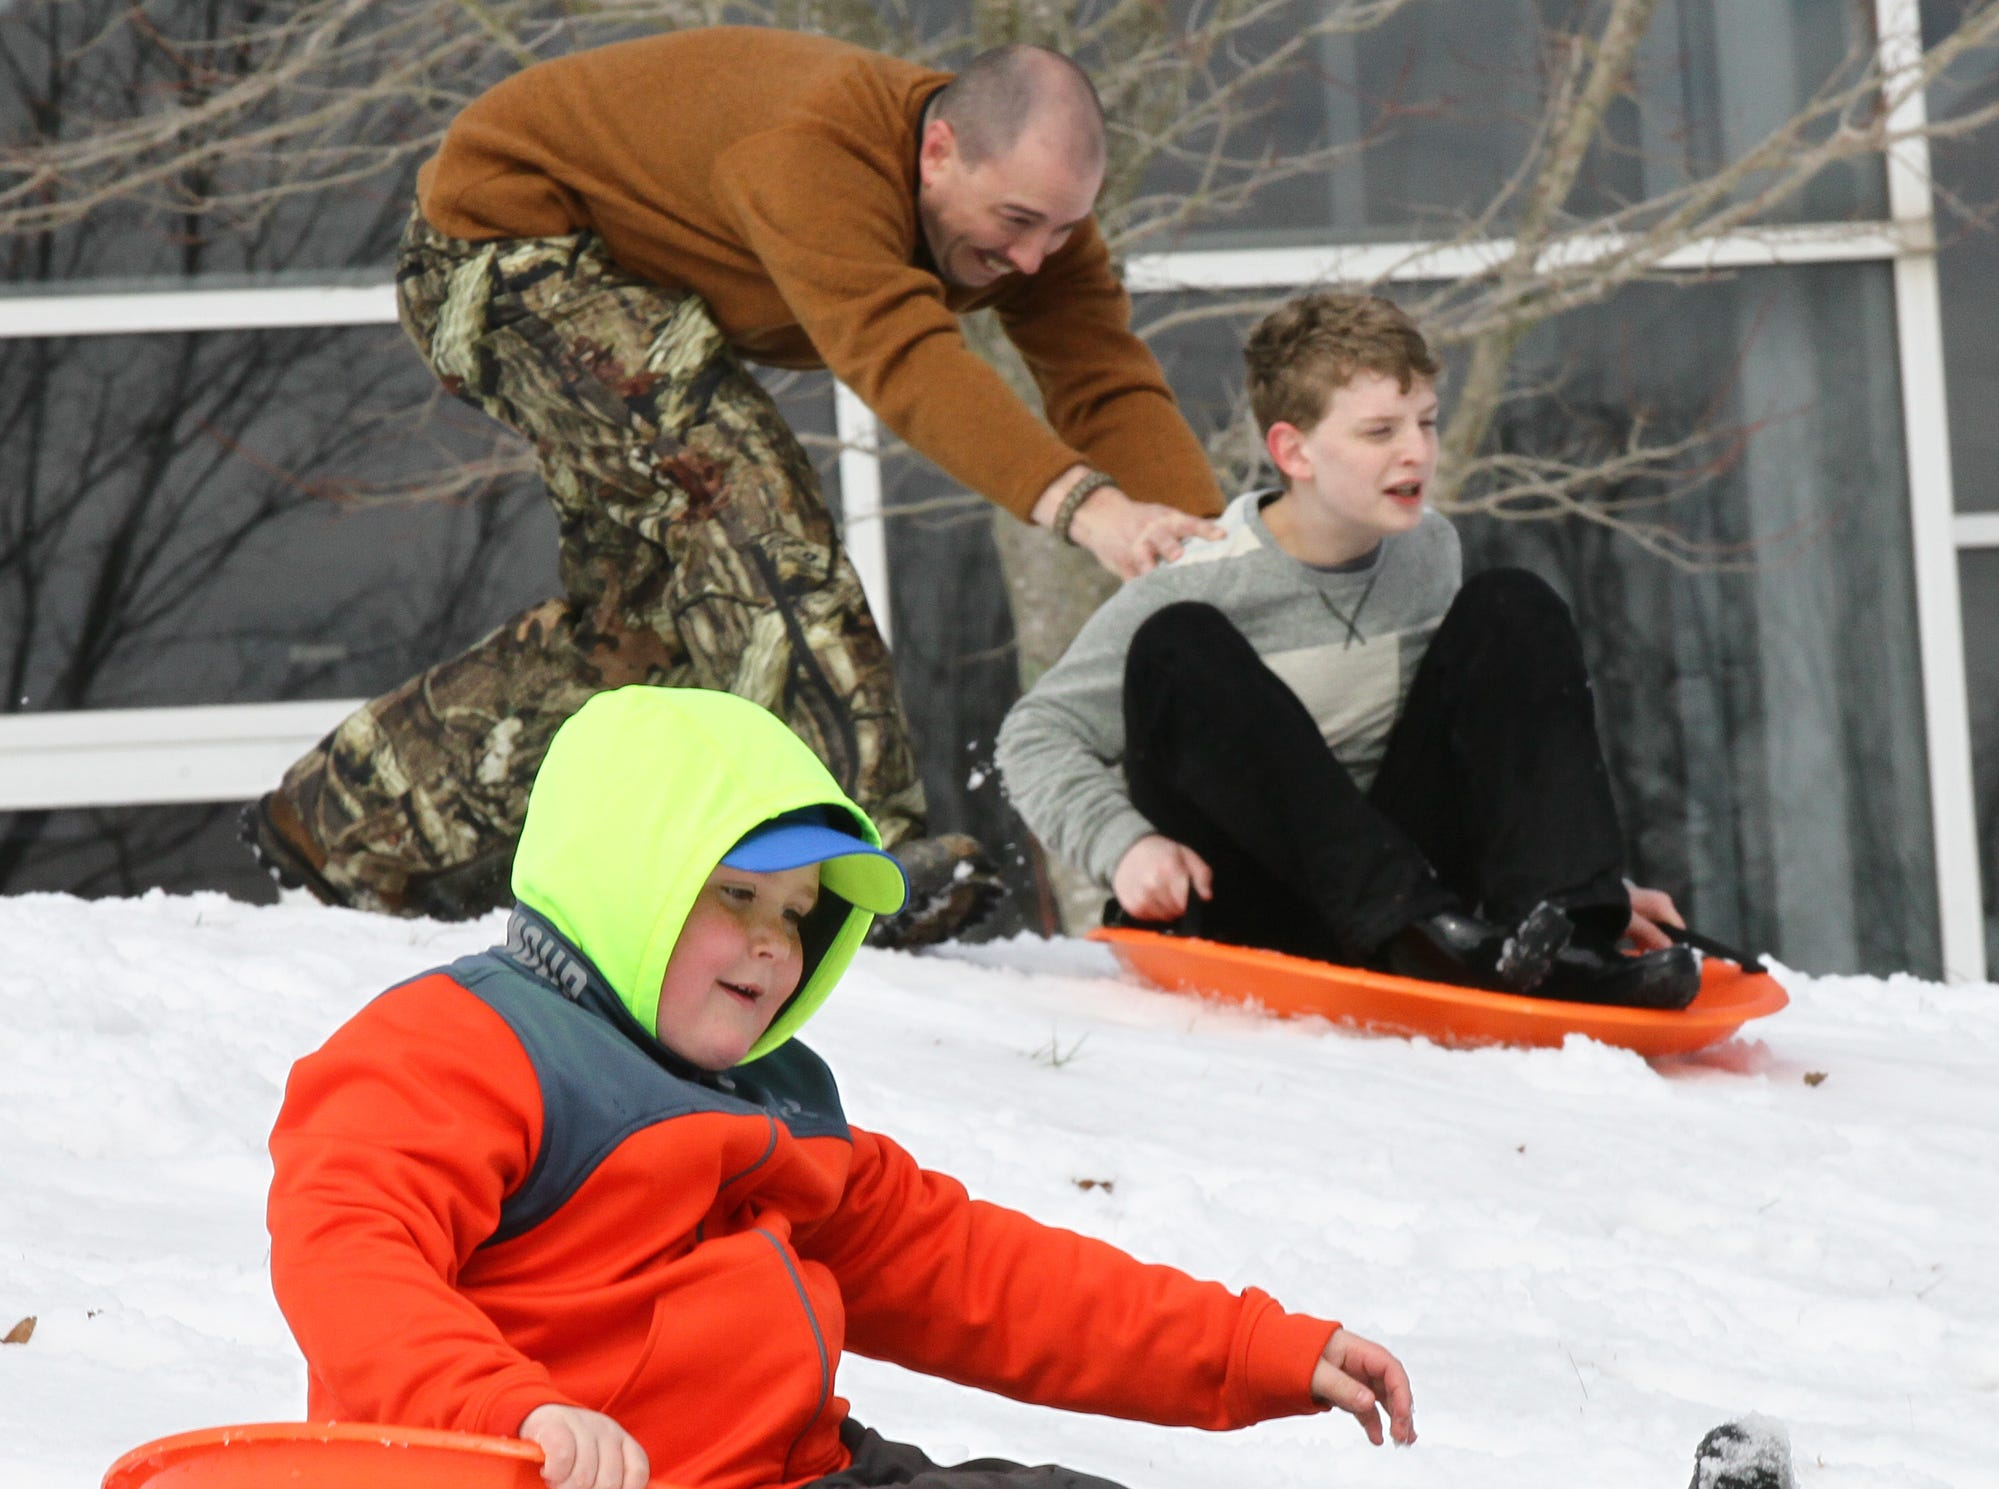 Colton Gaines, left, and Hunter Crowe, right, slide down a hill covered with snow at the Civic Center of Anderson in 2014.